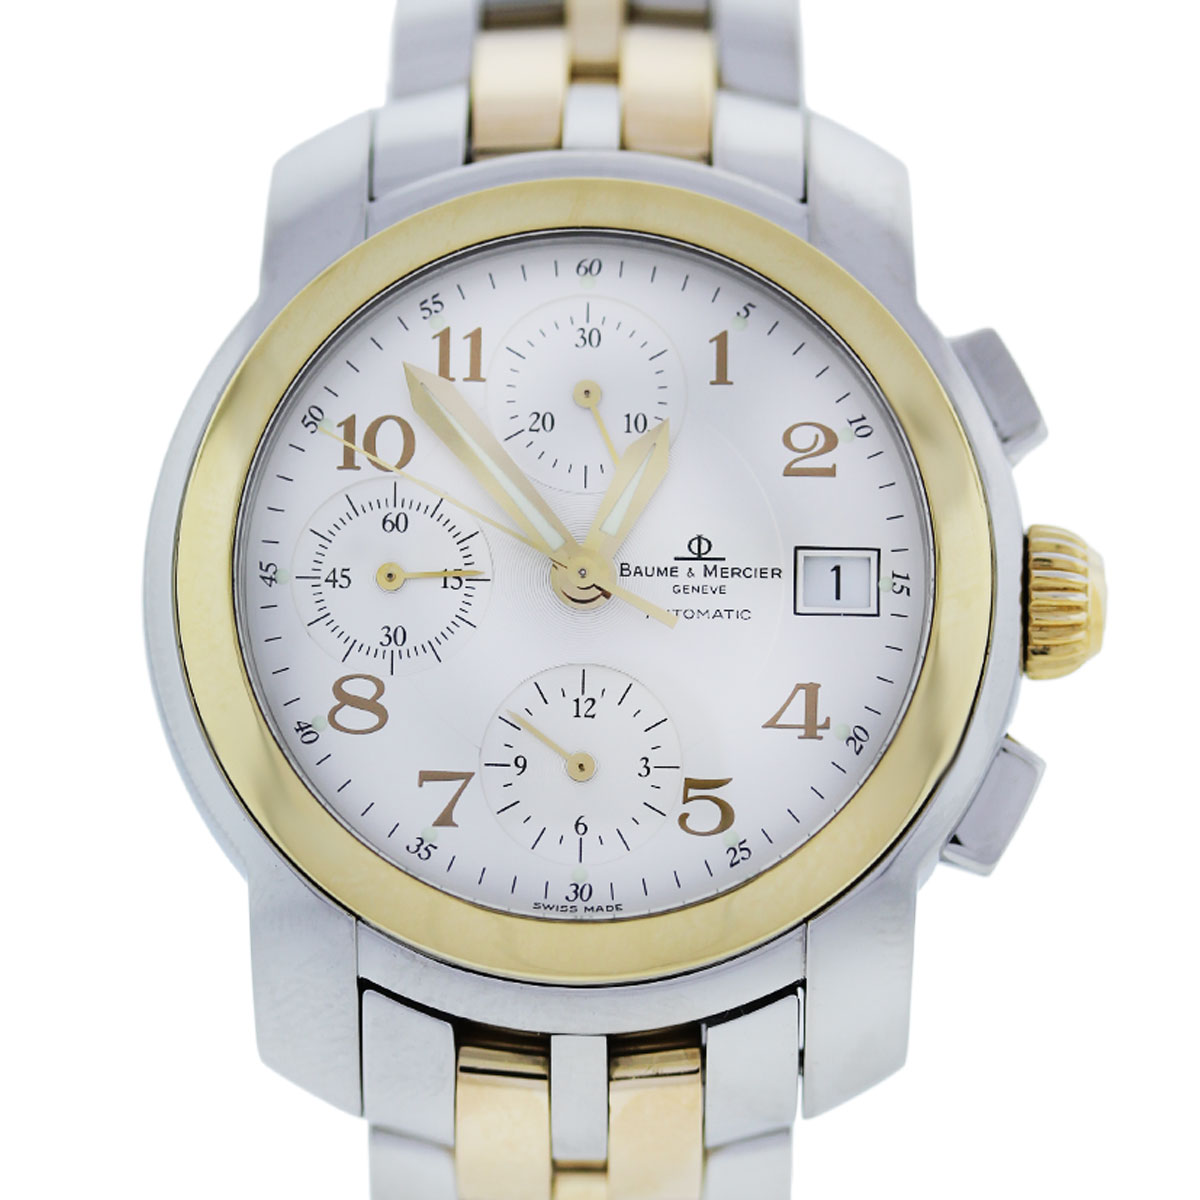 You are viewing this Baume & Mercier Capeland Two Tone Automatic Watch!